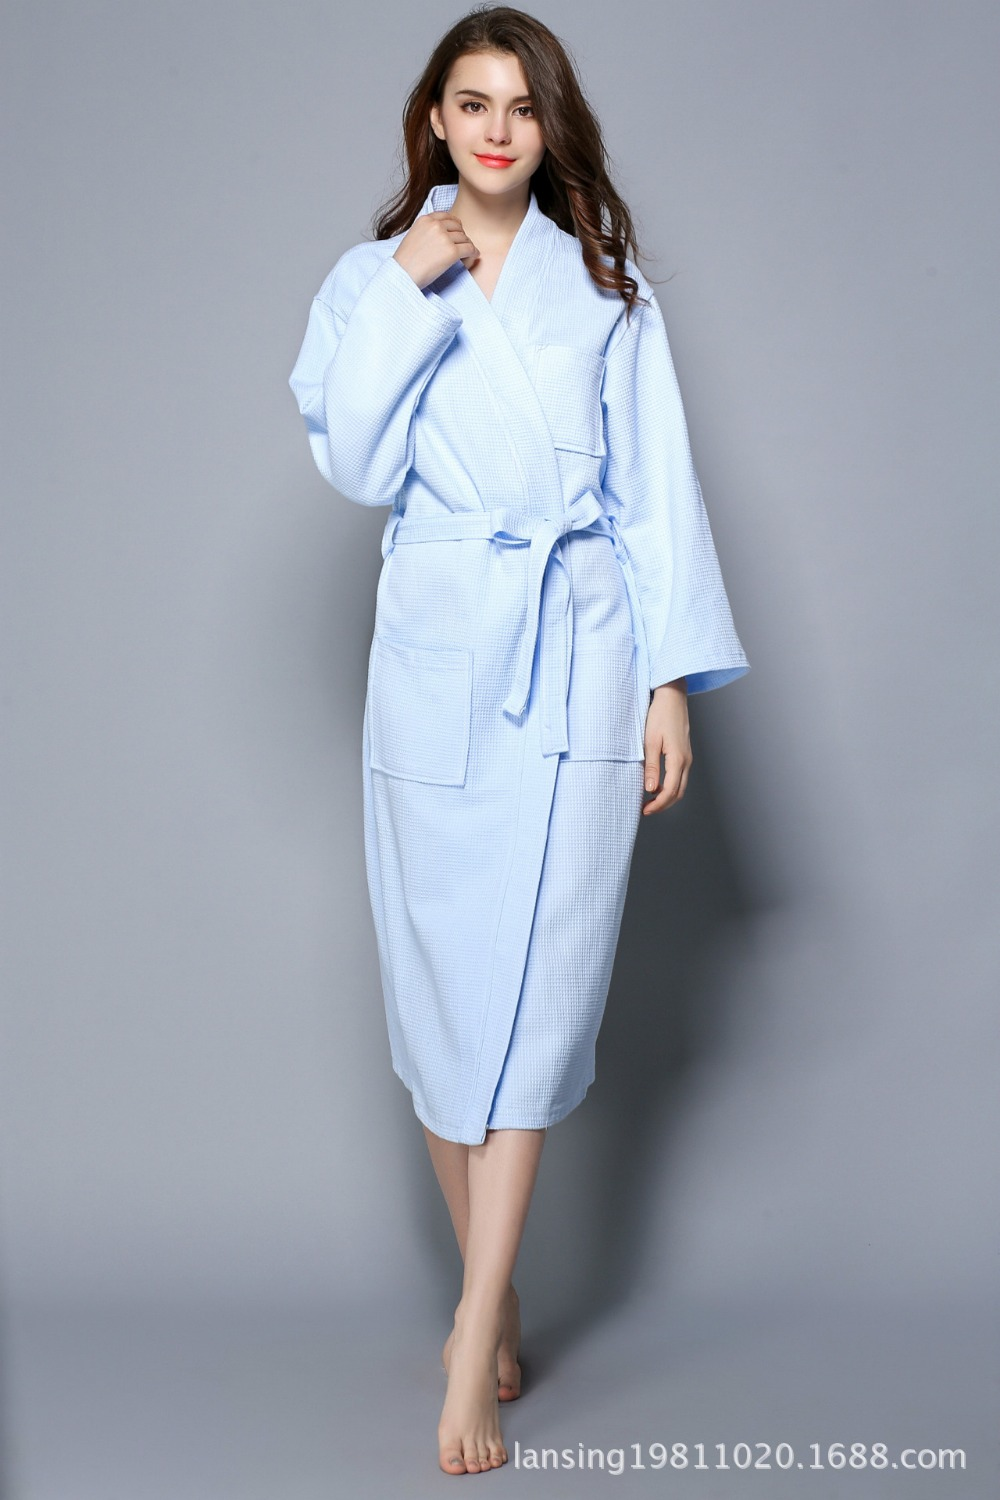 Womens all seasons 100% cotton waffle hotel and home bath robe unisex leisure exrta large size nightwear robe women homewear